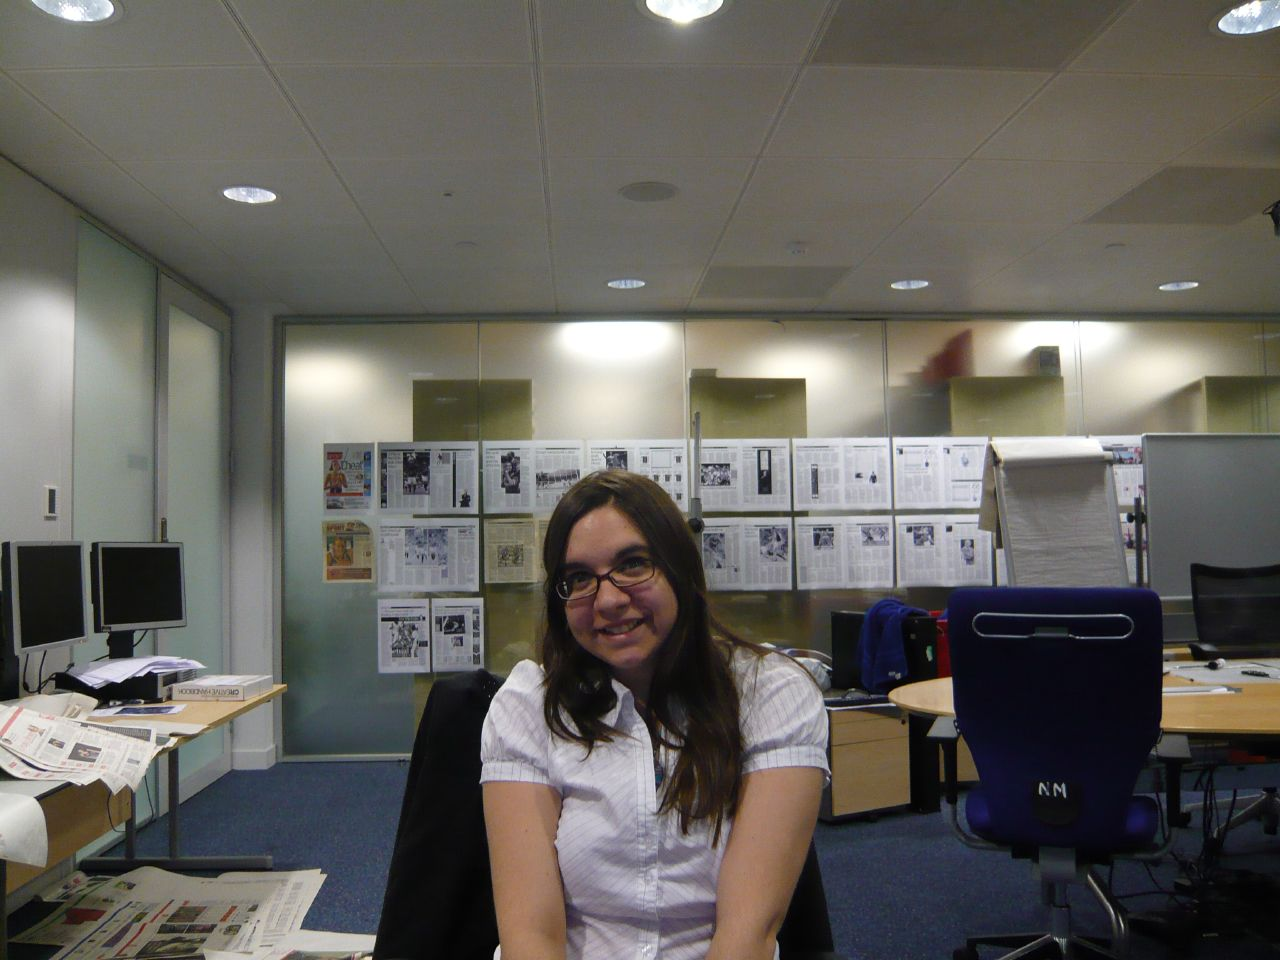 Carla sitting at a desk in a room full of newspaper layouts. She has medium length dark hair so you can tell it's 2008! | carlawatkins.com